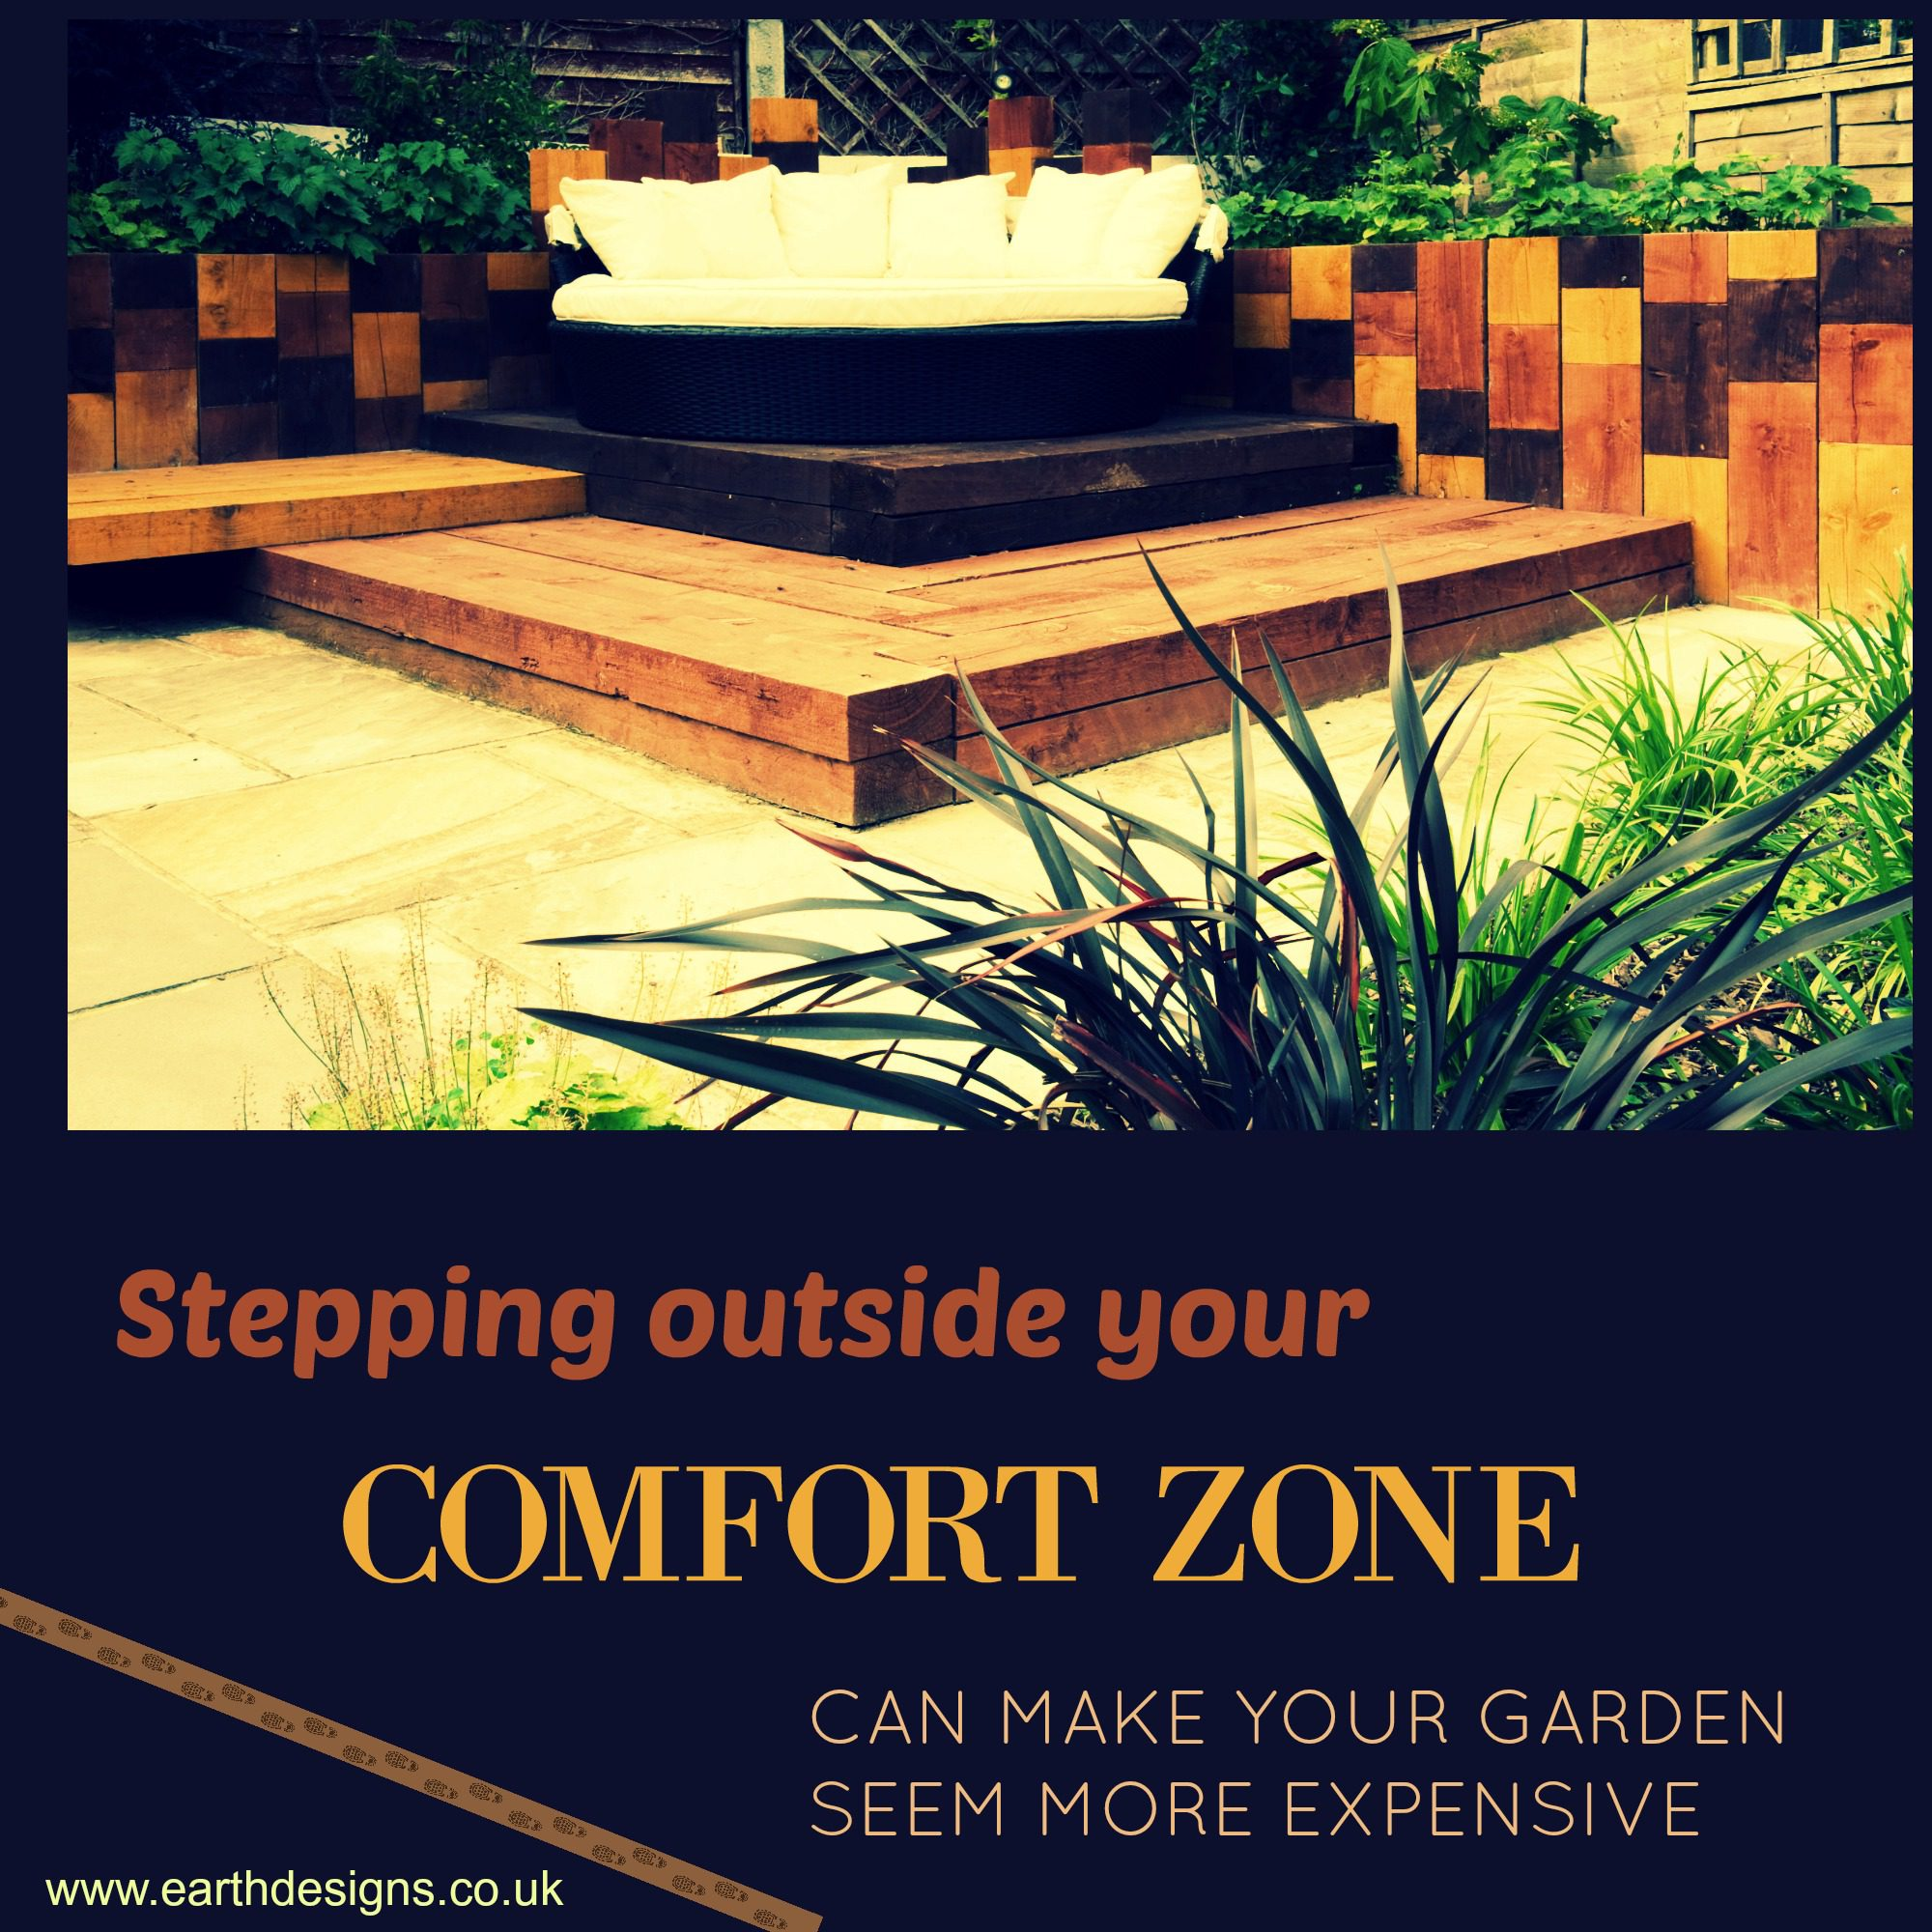 Blog - Page 11 of 73 - Earth Designs Garden Design and Build Cool Garden Design Saying on beautiful garden designs, elegant garden designs, unique garden designs, cool vegetable gardens, great garden designs, wicking garden designs, custom garden designs, simple garden designs, small yard garden designs, cool backyard gardens, cute garden designs, secret garden designs, inspiring garden designs, cold garden designs, wet garden designs, spring garden designs, rock garden designs, art garden designs, white garden designs, alpine garden designs,